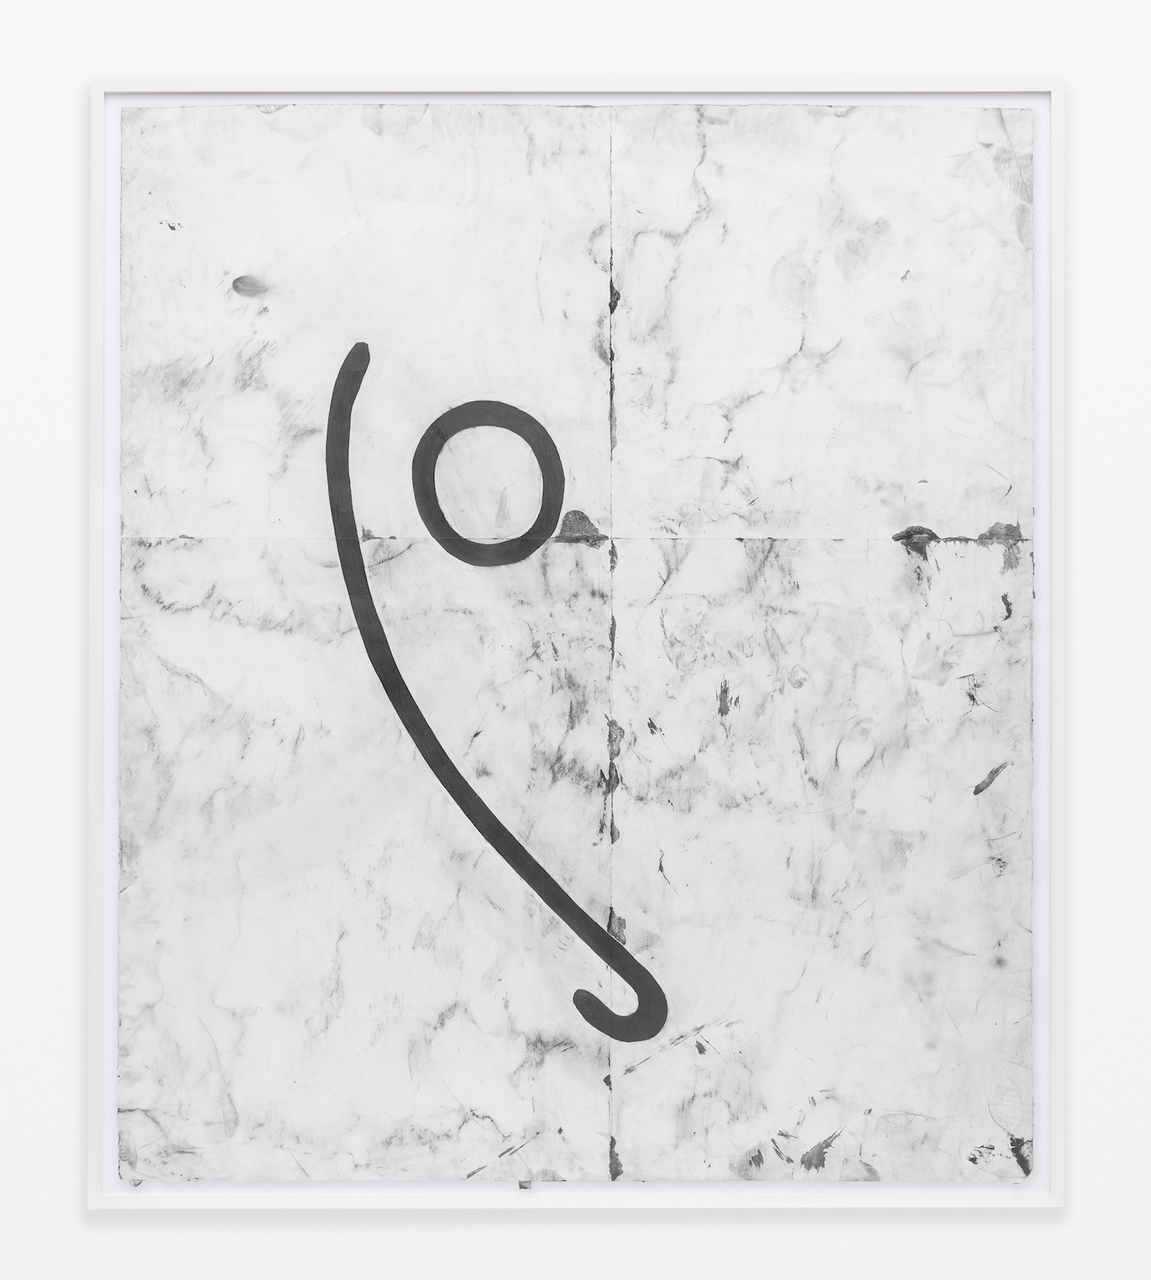 15.Lewis_Automatic, 2015_Pencil, graphite powder, and tape on paper_83.75x71.5 inches